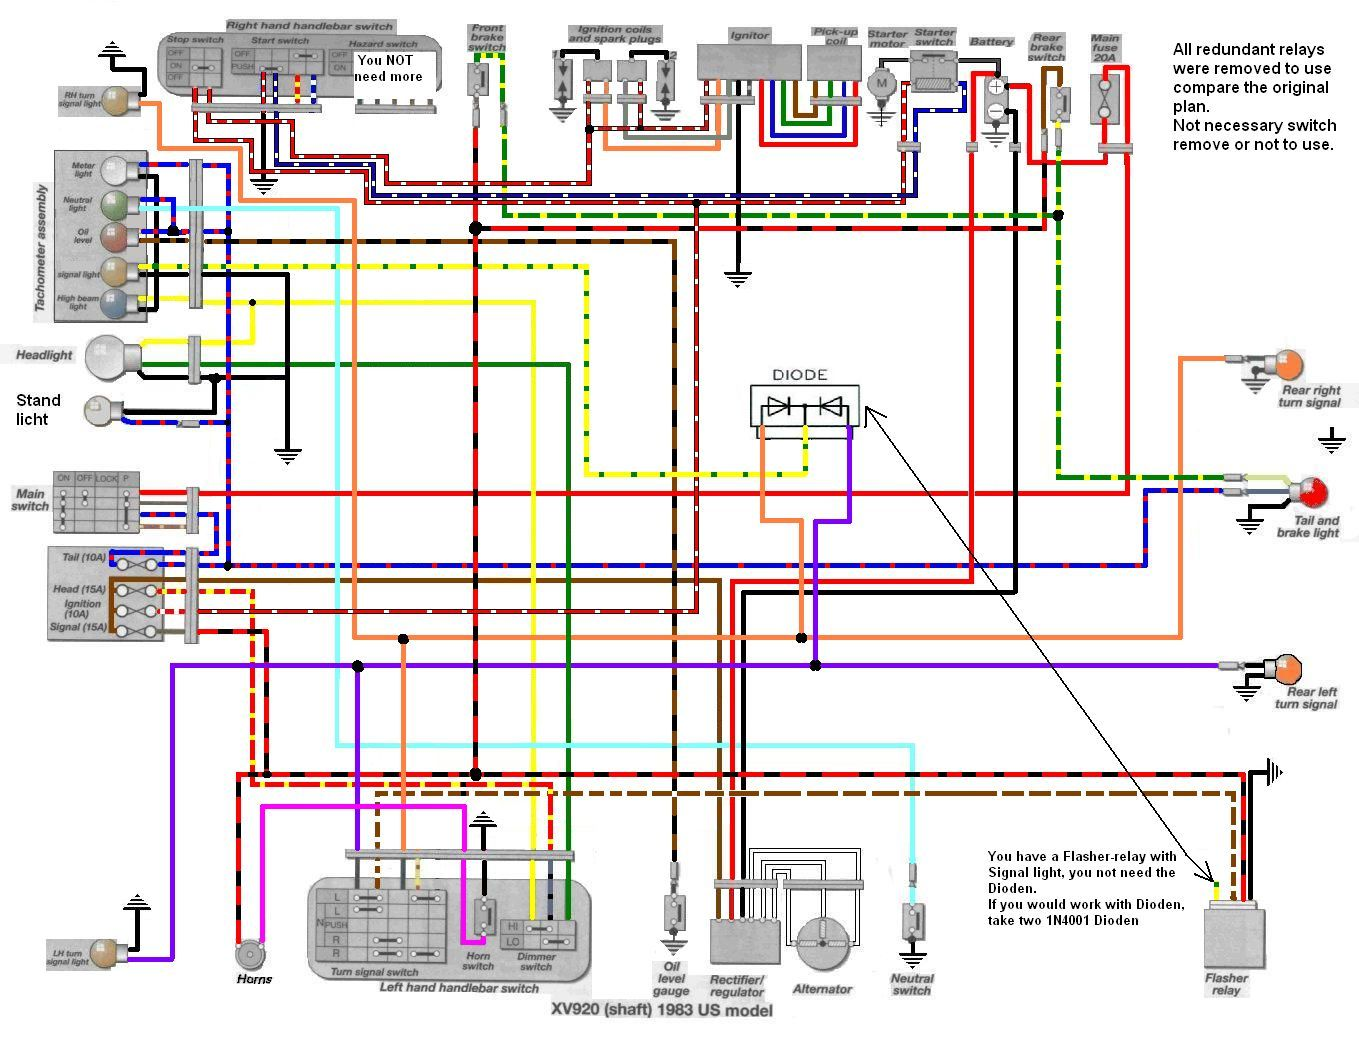 de5d52e2409fec2f5ef10f130e06771b tr1 xv1000 xv920 wiring diagrams manfred's tr1 page all about yamaha virago 750 wiring diagram at aneh.co